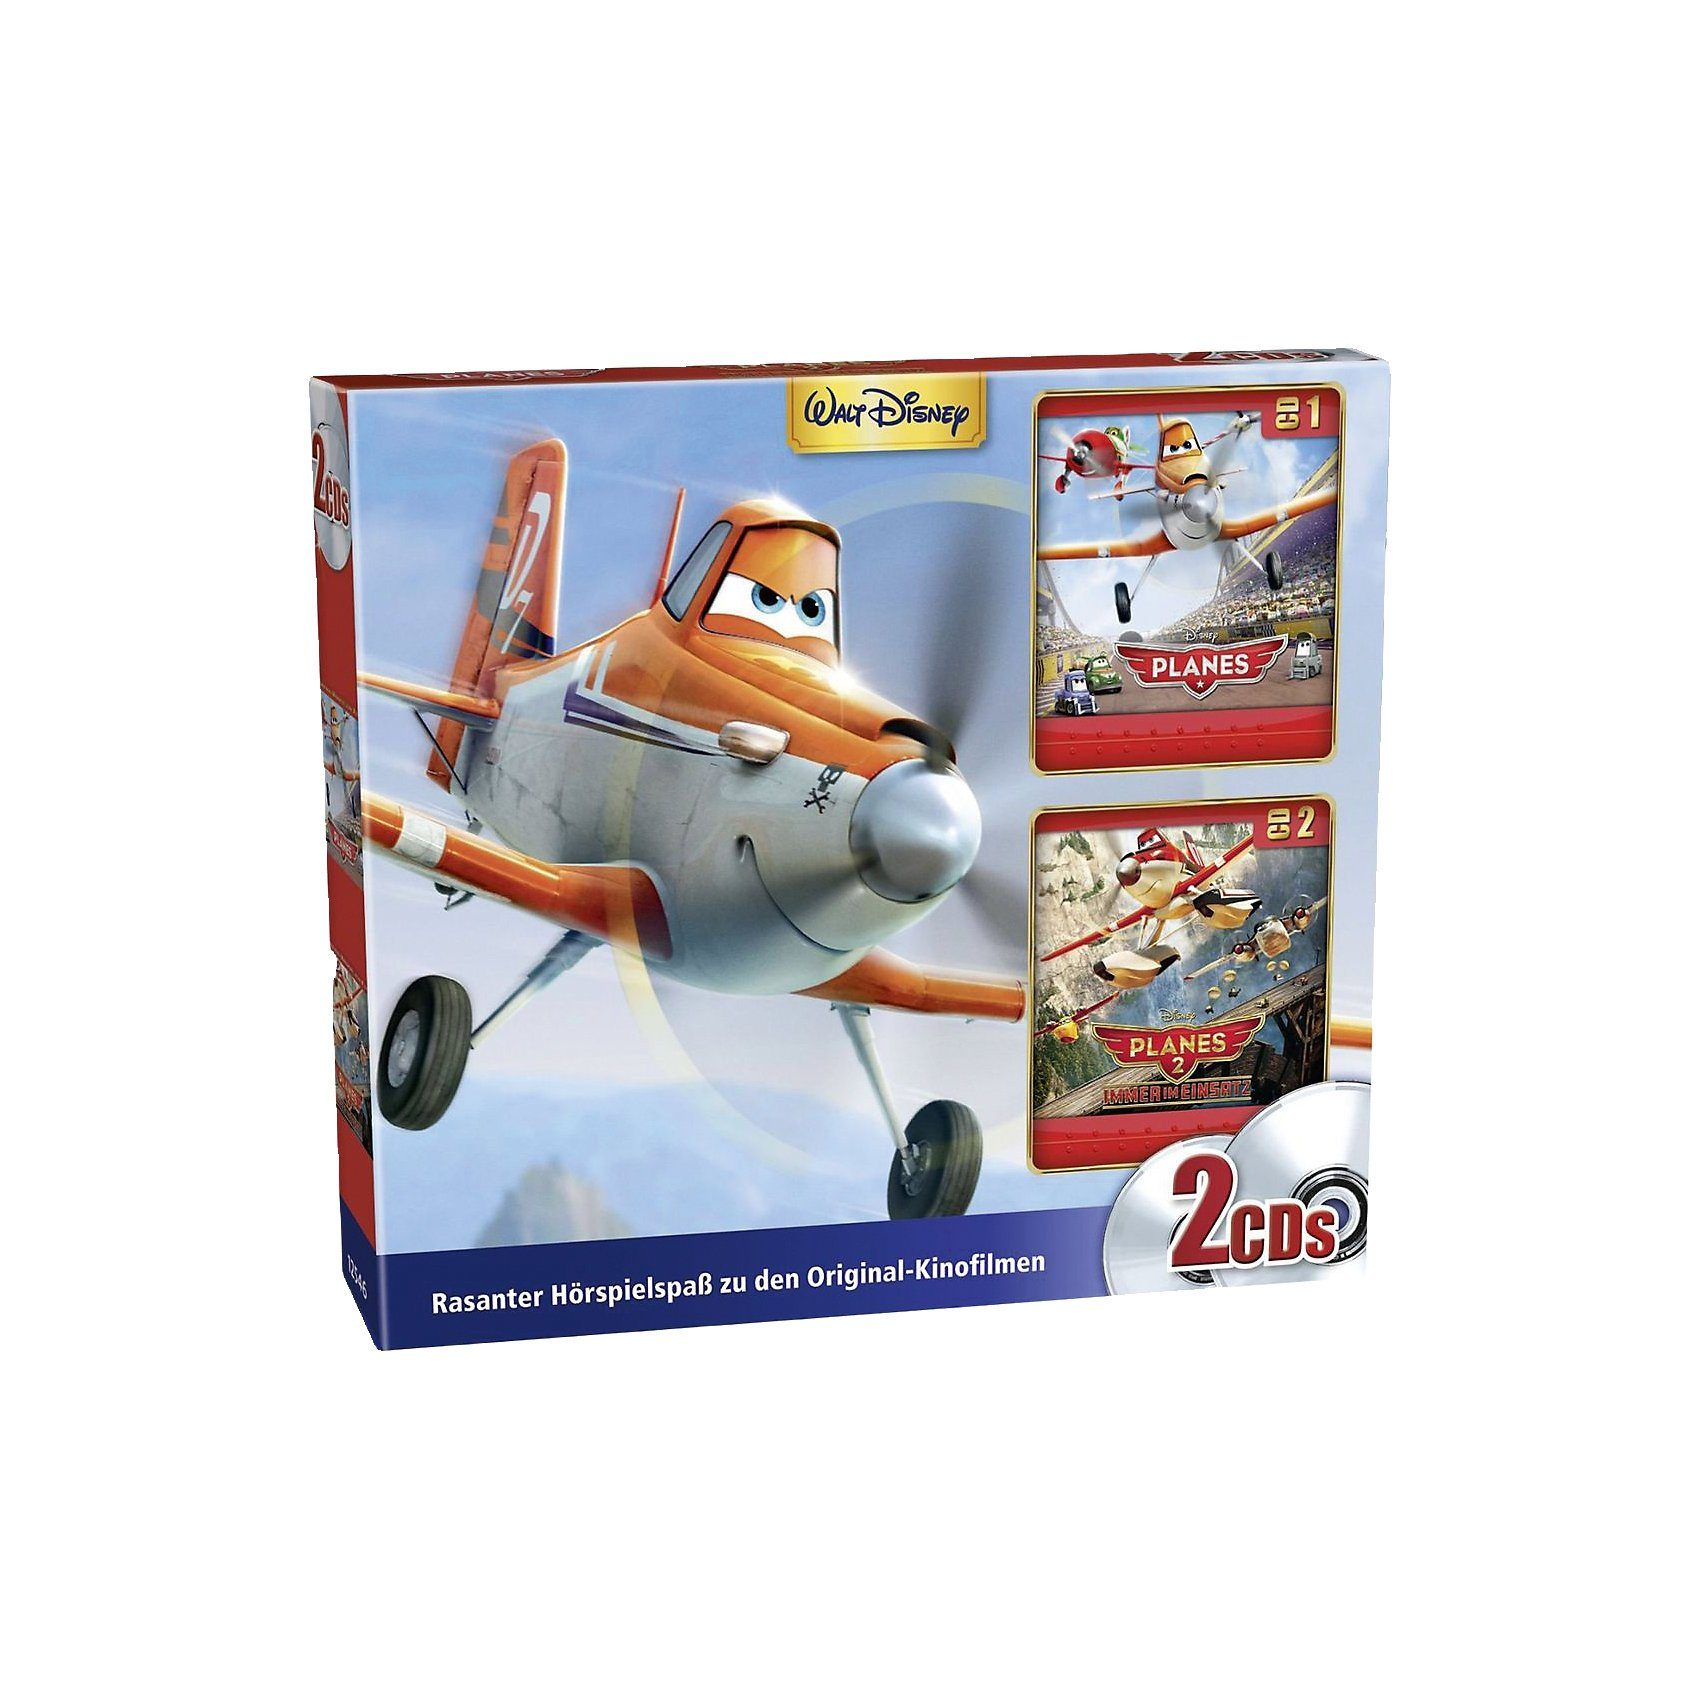 Kiddinx CD Disney Planes 1 & 2